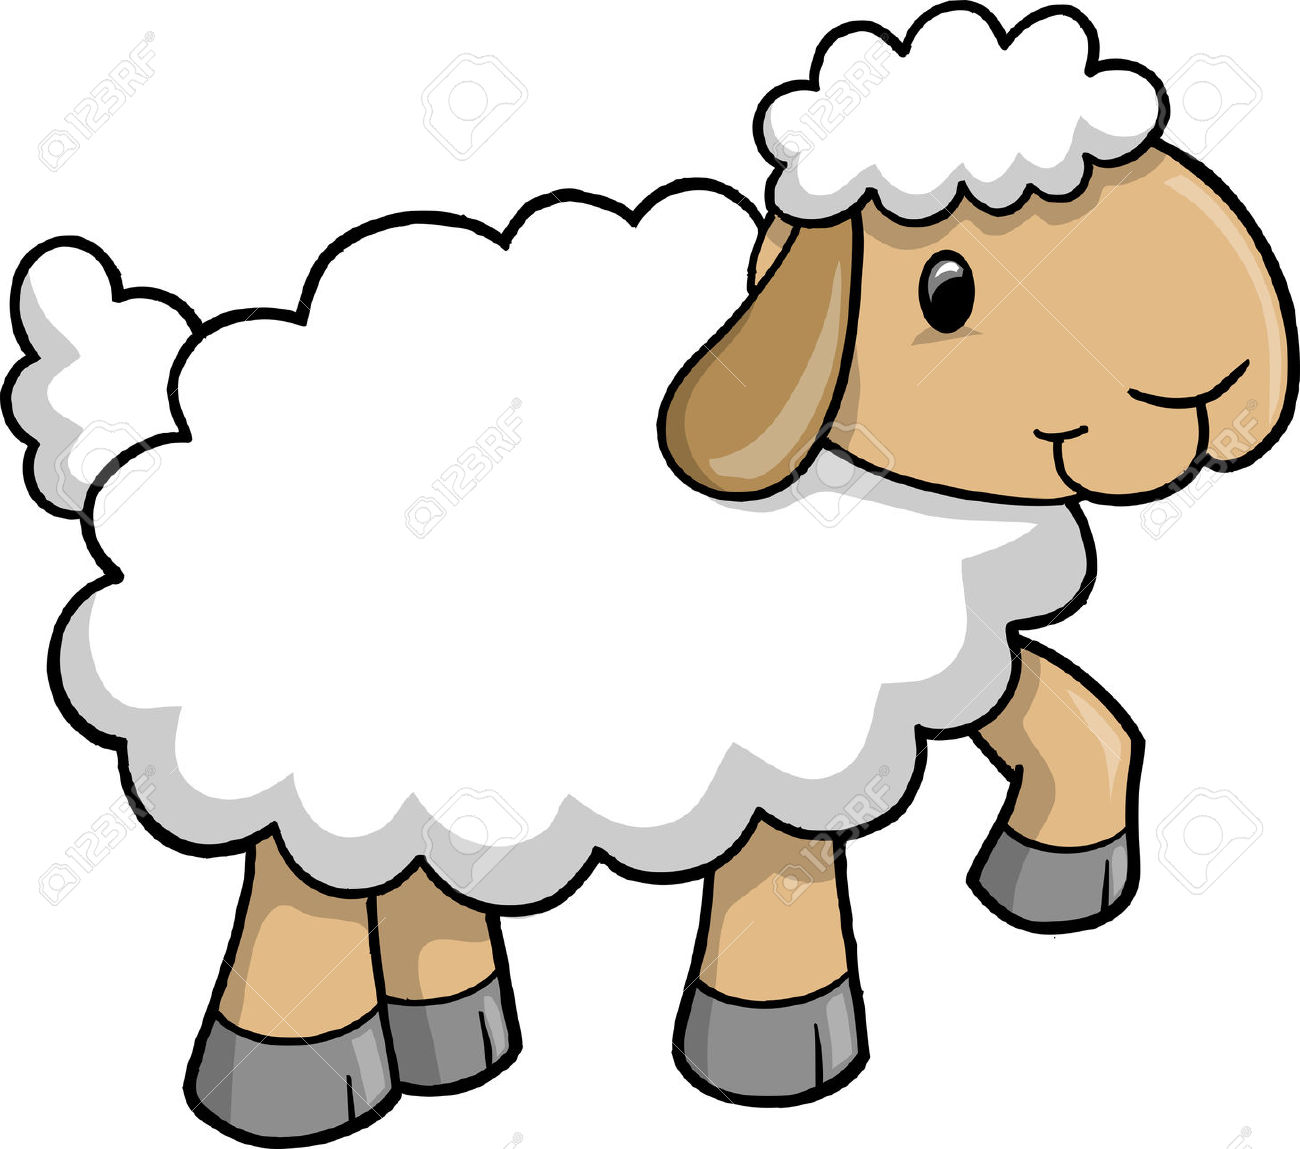 Sheep Clipart Cartoon-Sheep Clipart Cartoon-0